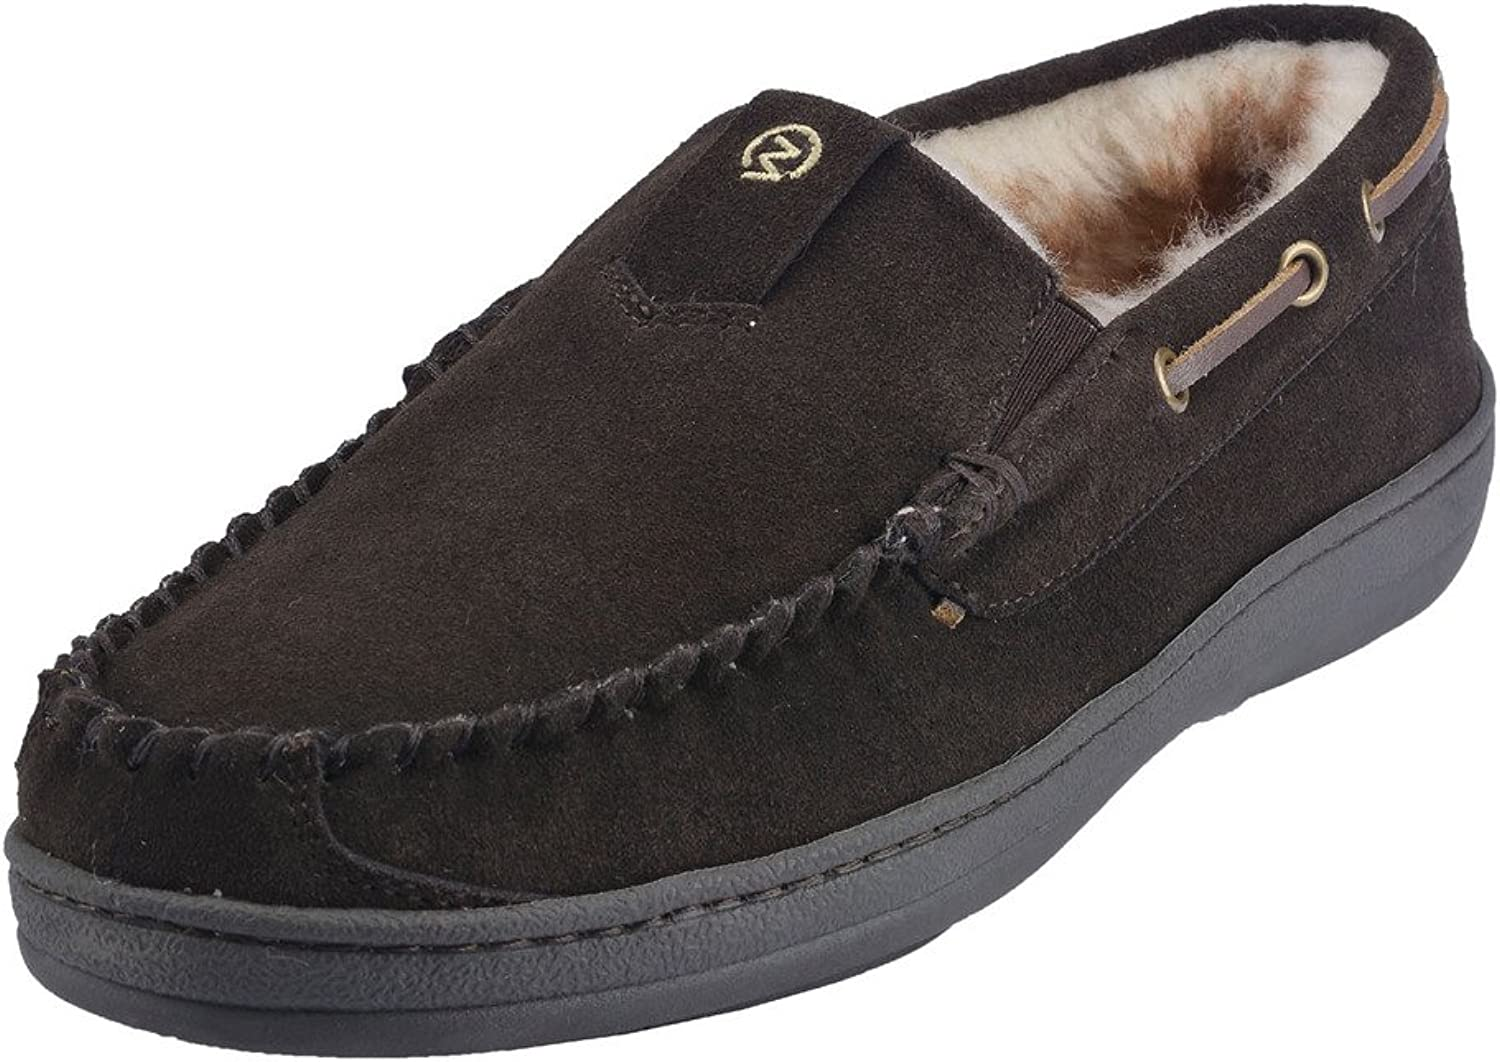 MOC PAPA Cow Suede Leather Slip-on Moccasin Slipper